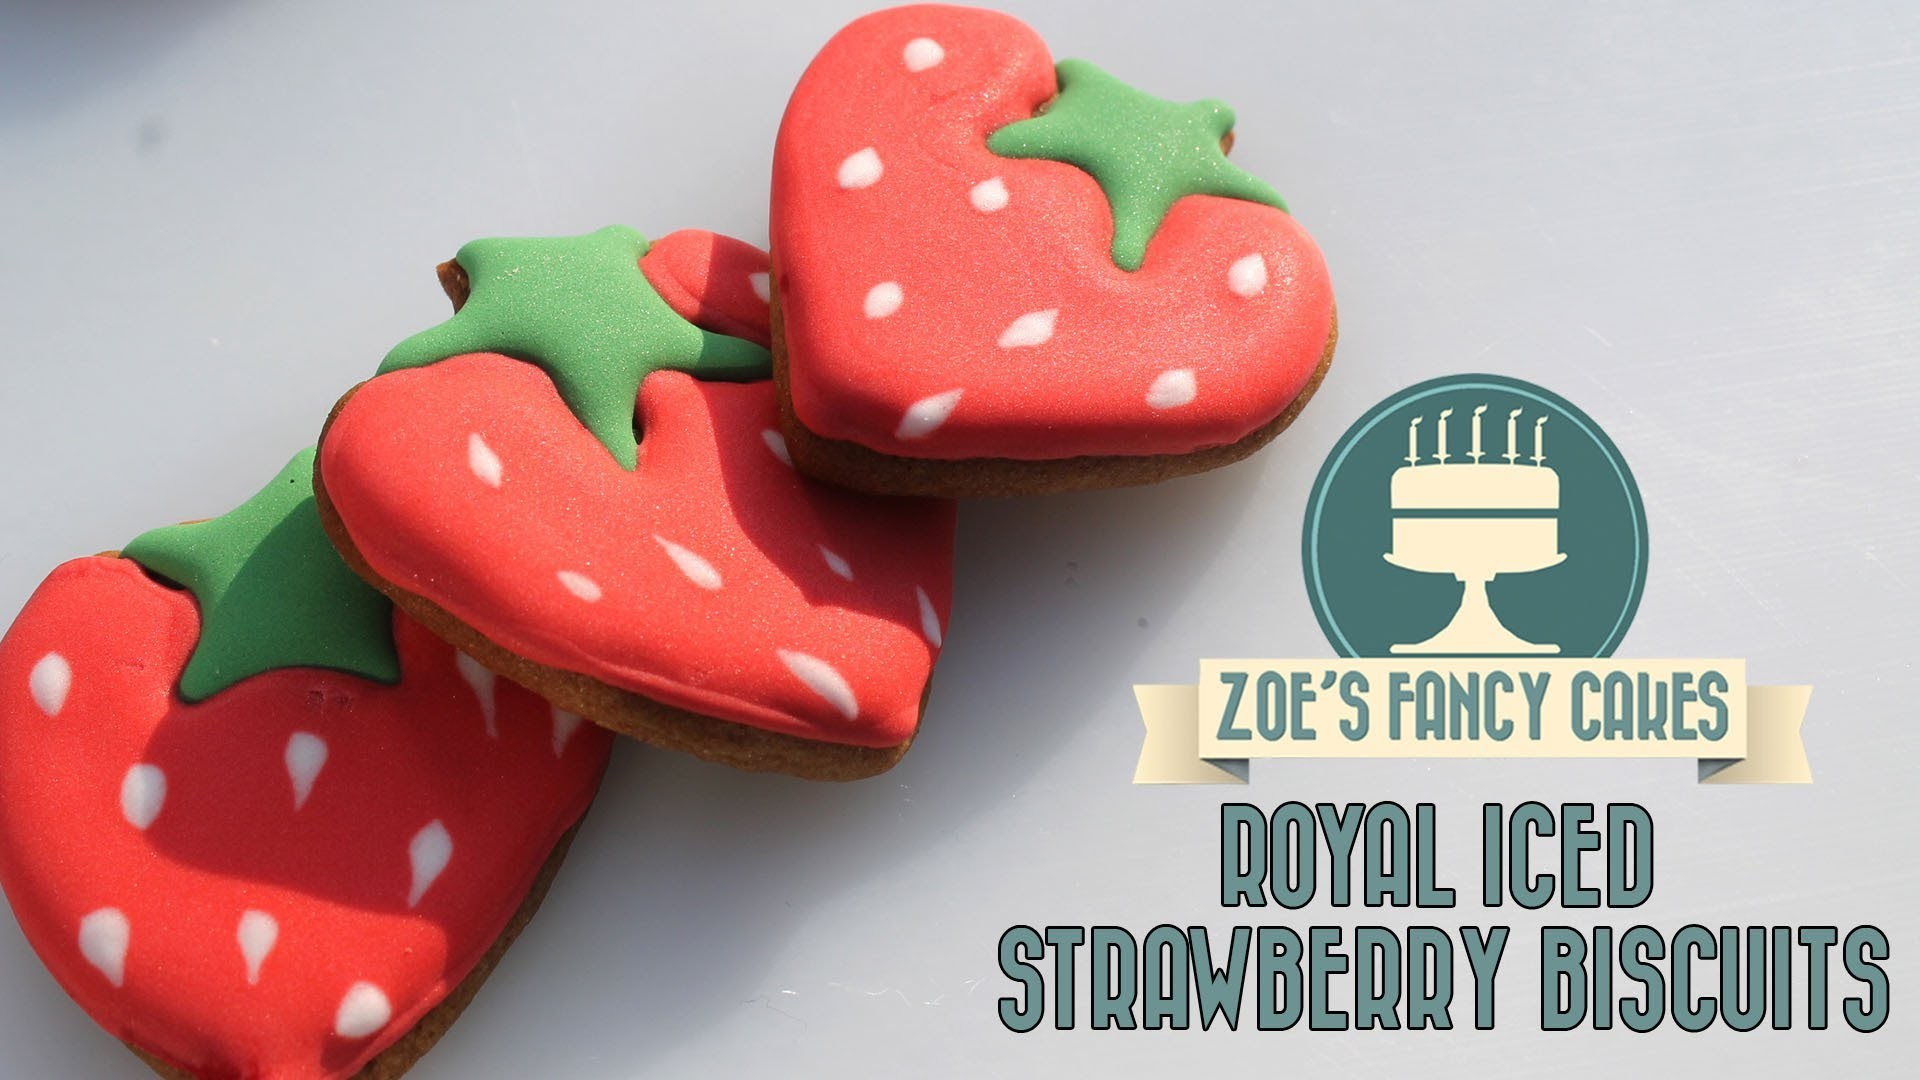 Royal icing strawberry biscuits How To Tutorial Zoes Fancy Cakes